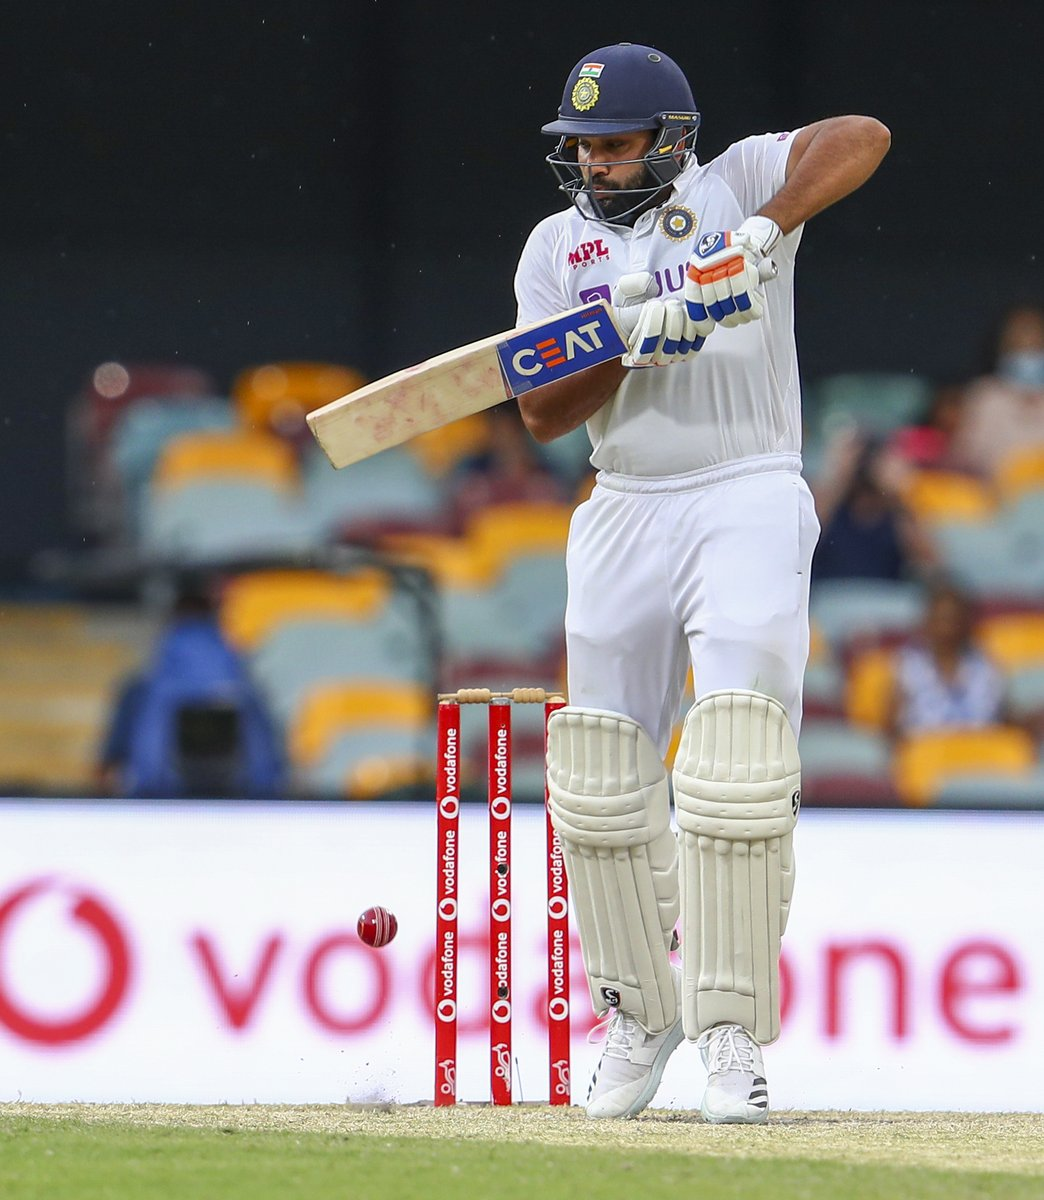 #GabbaTest, Day 5- Huge blow for India, Rohit departs for 7! Pujara walks in. LIVE UPDATES:sify.com/sports/cricket…